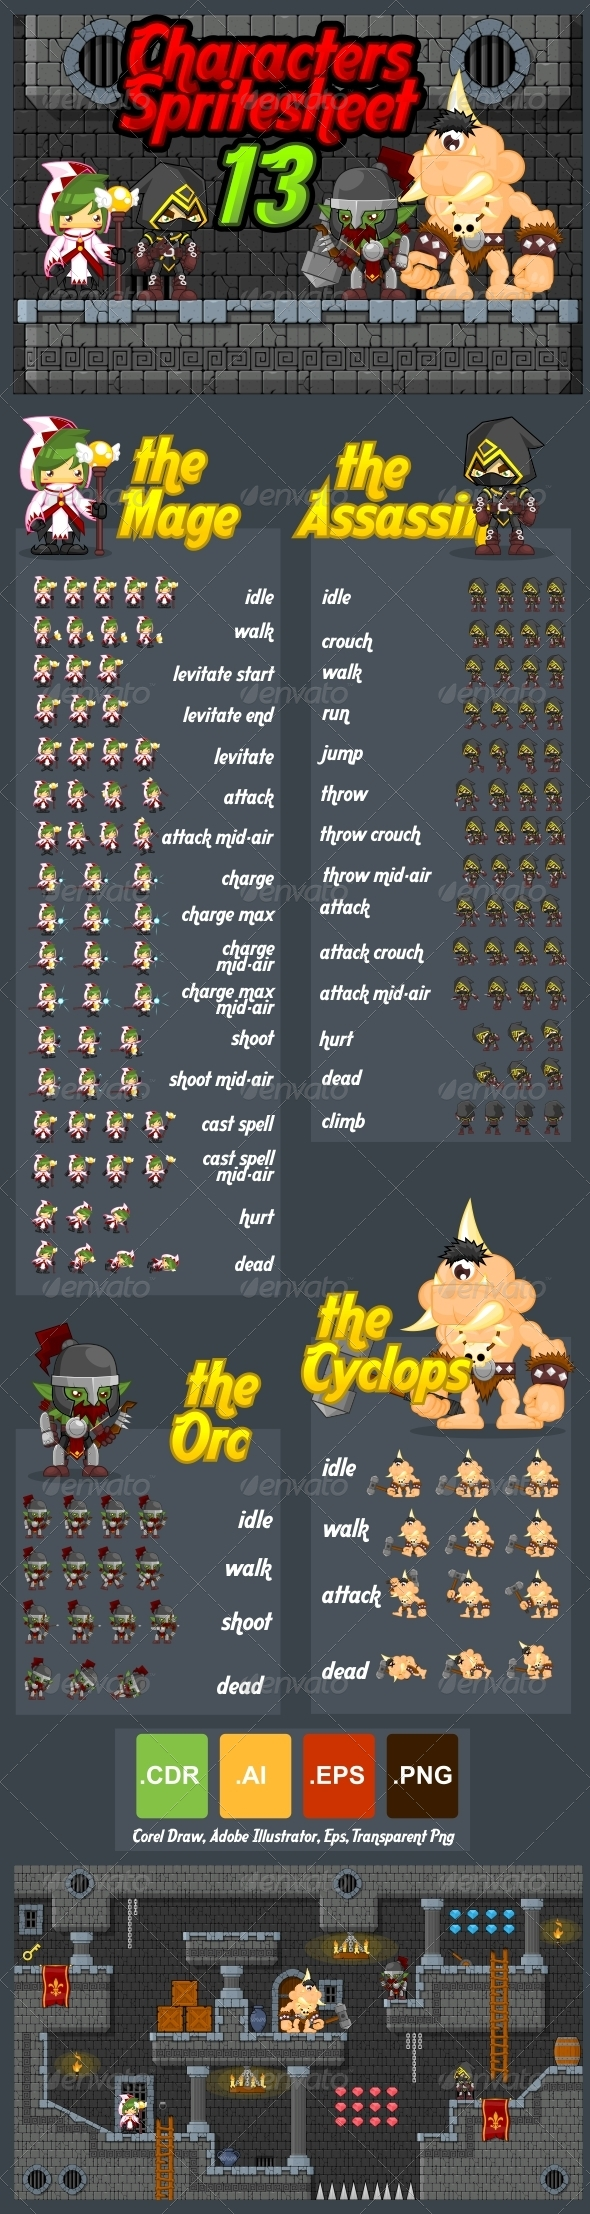 GraphicRiver Characters Spritesheet 13 7346771